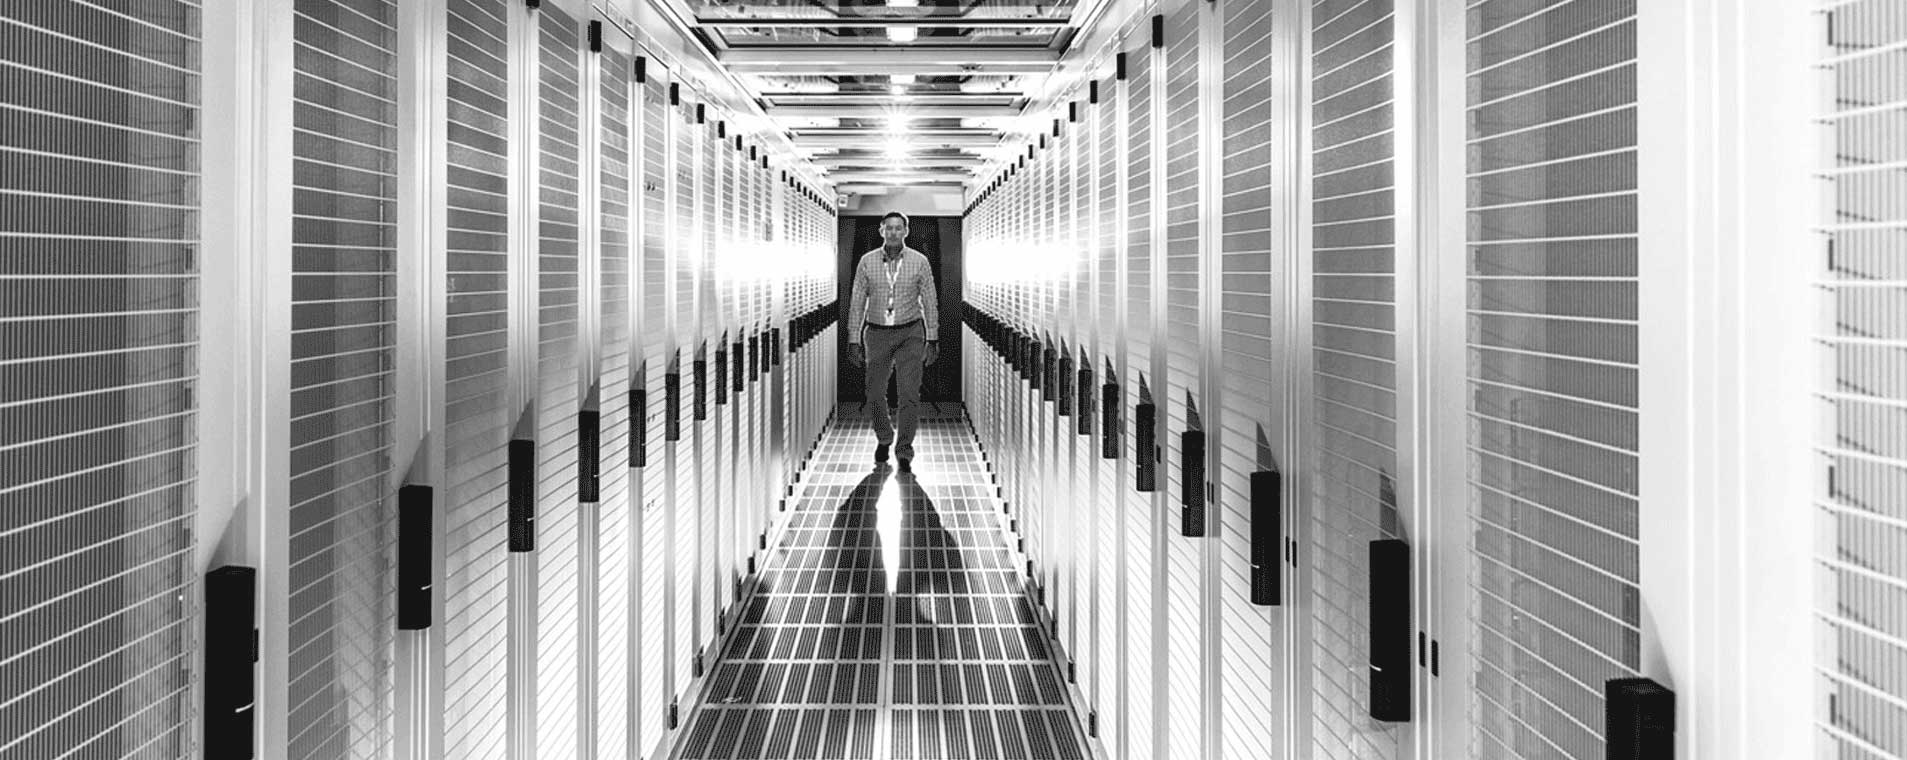 Macquarie Telecom Group investors colocation cloud hosting, voice, data and mobile experts